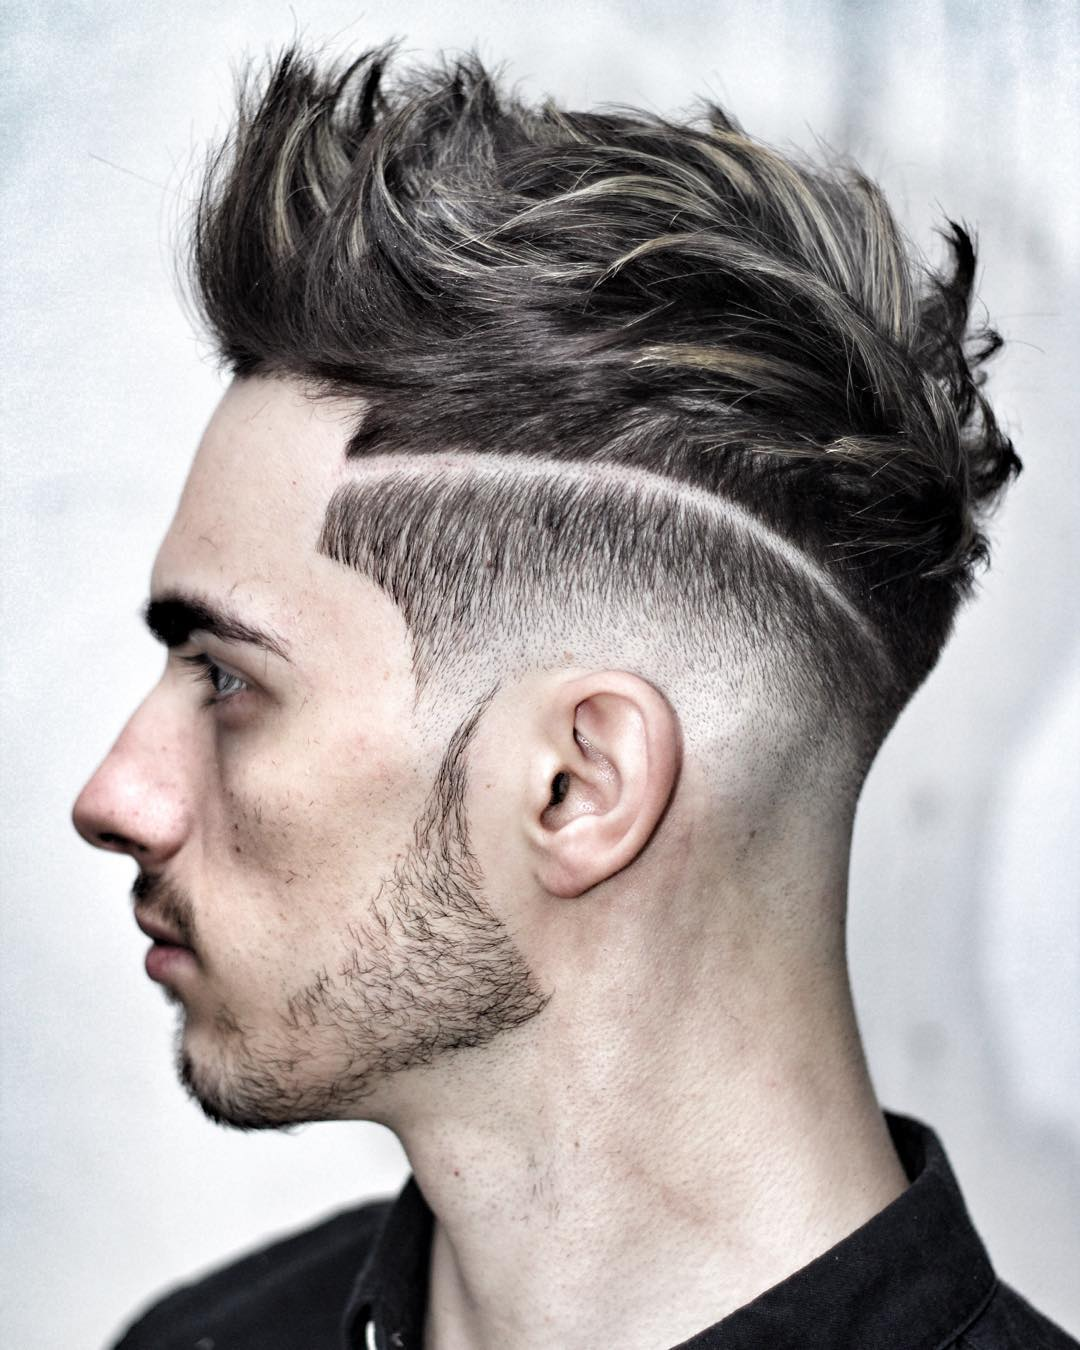 Hairstyles with quiff - Textured Hairstyles For Men